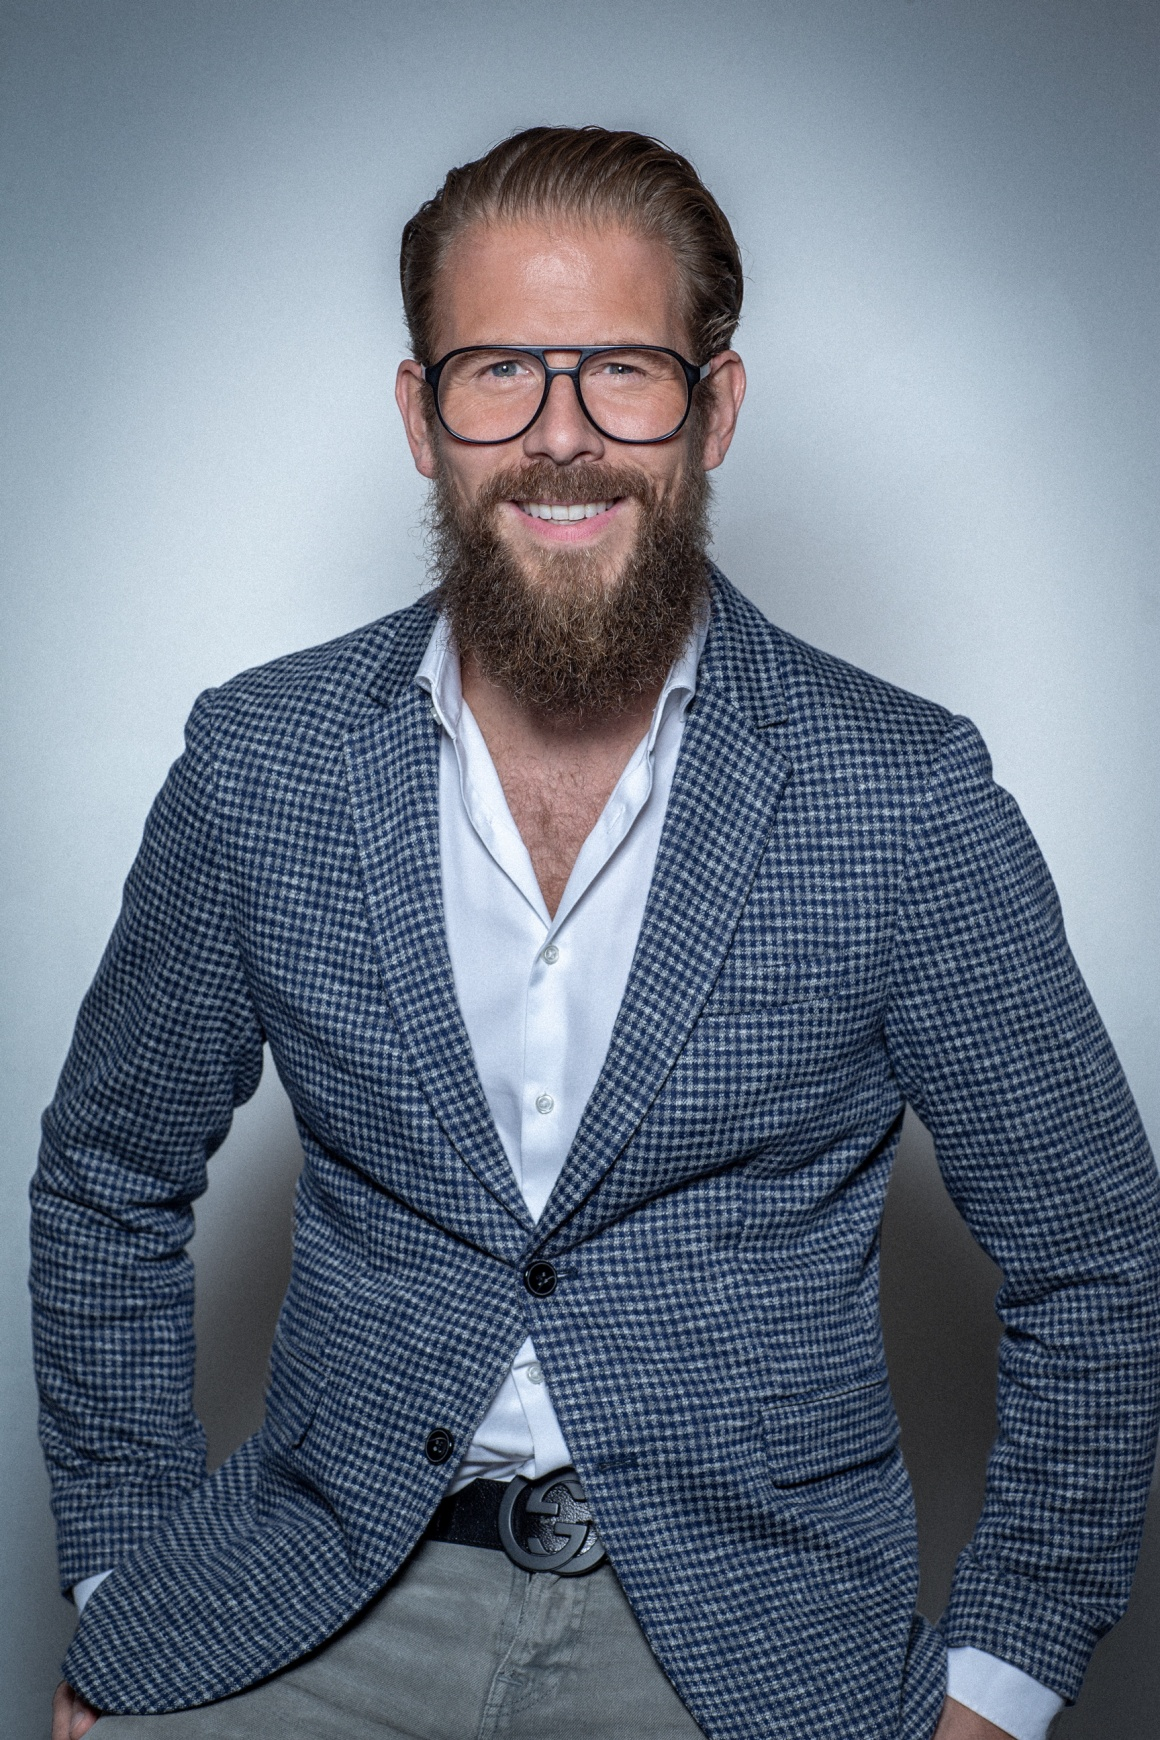 A man in a jacket with beard and glasses